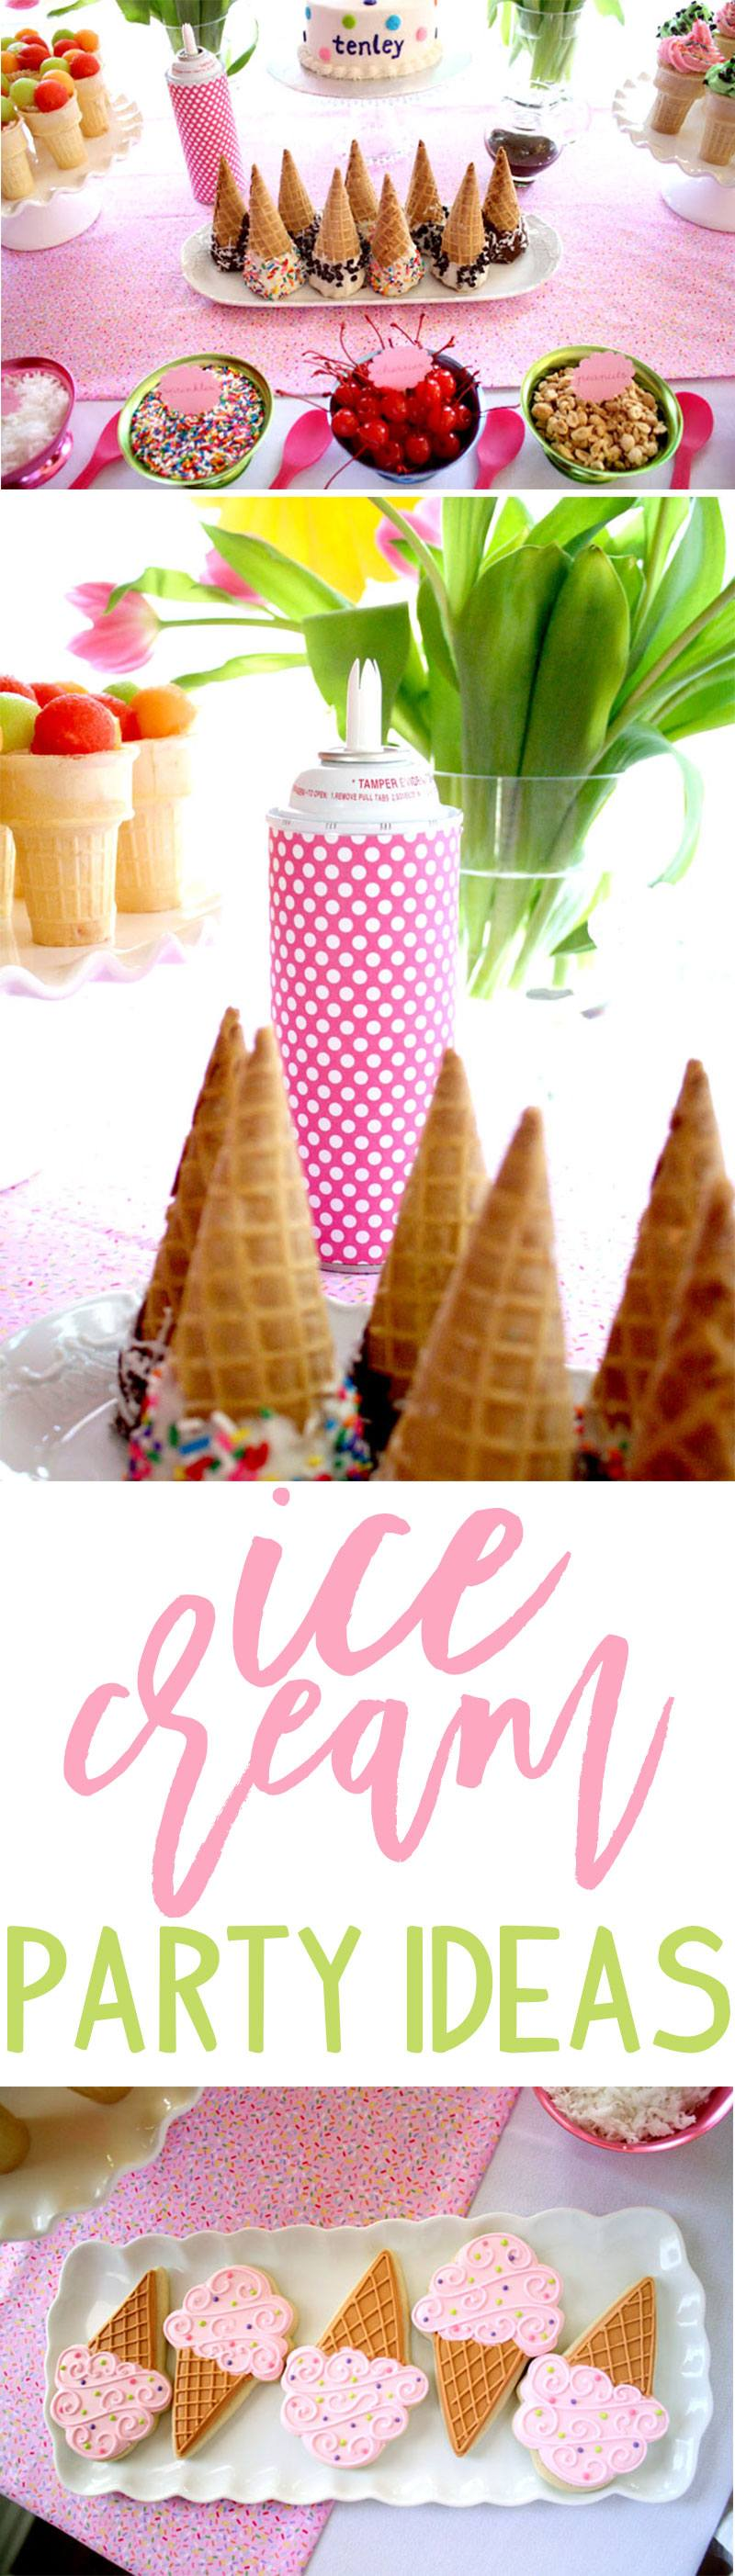 Ice Cream Party Ideas on Love The Day